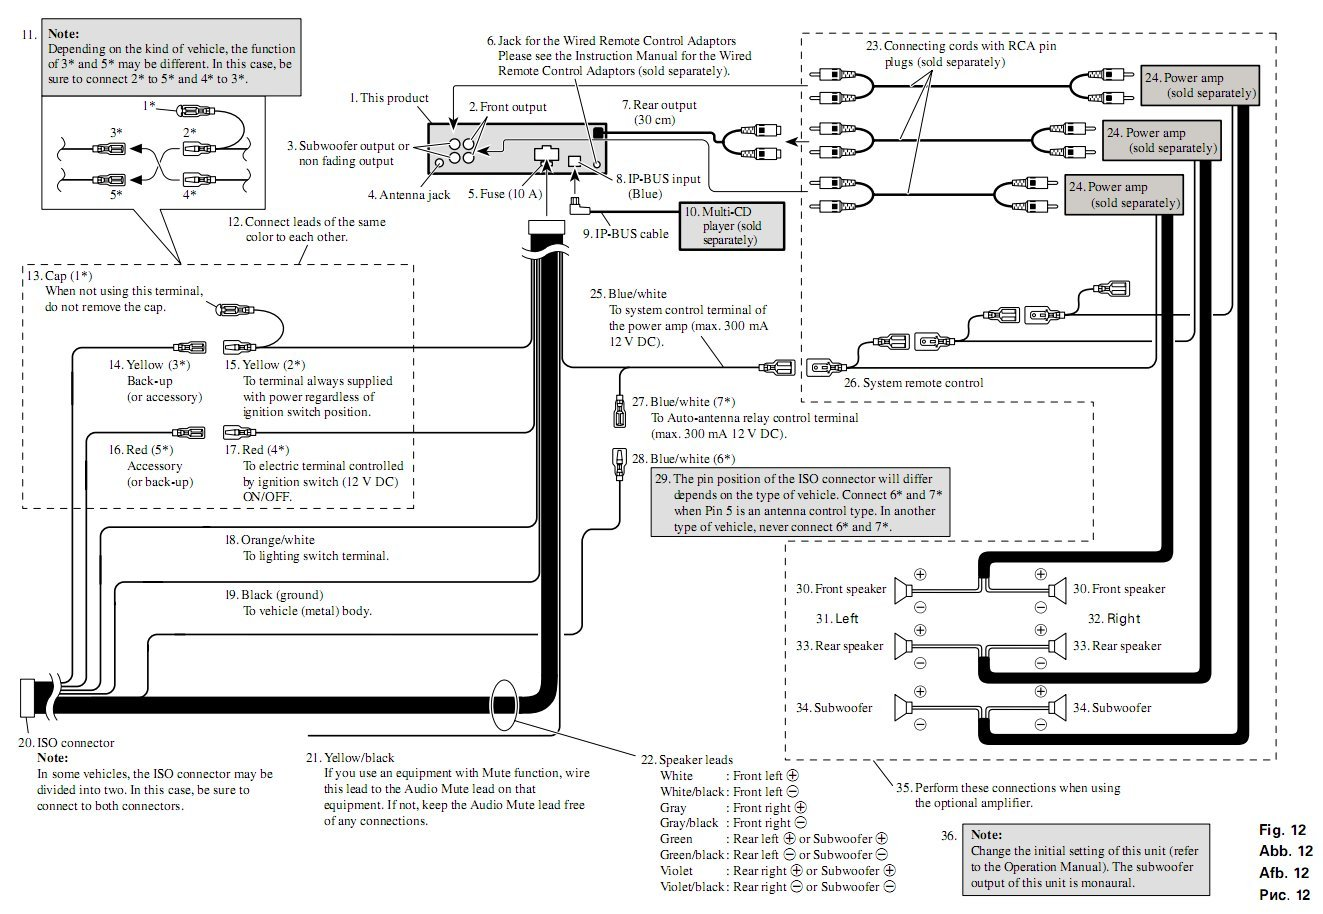 DIAGRAM] Car Stereo Pioneer Deh 1900mp Wiring Diagram FULL Version HD  Quality Wiring Diagram - TYPEDECAWIRING.RESTAURANTMOULINDEVERNEGUES.FRRestaurant Moulin de Vernegues